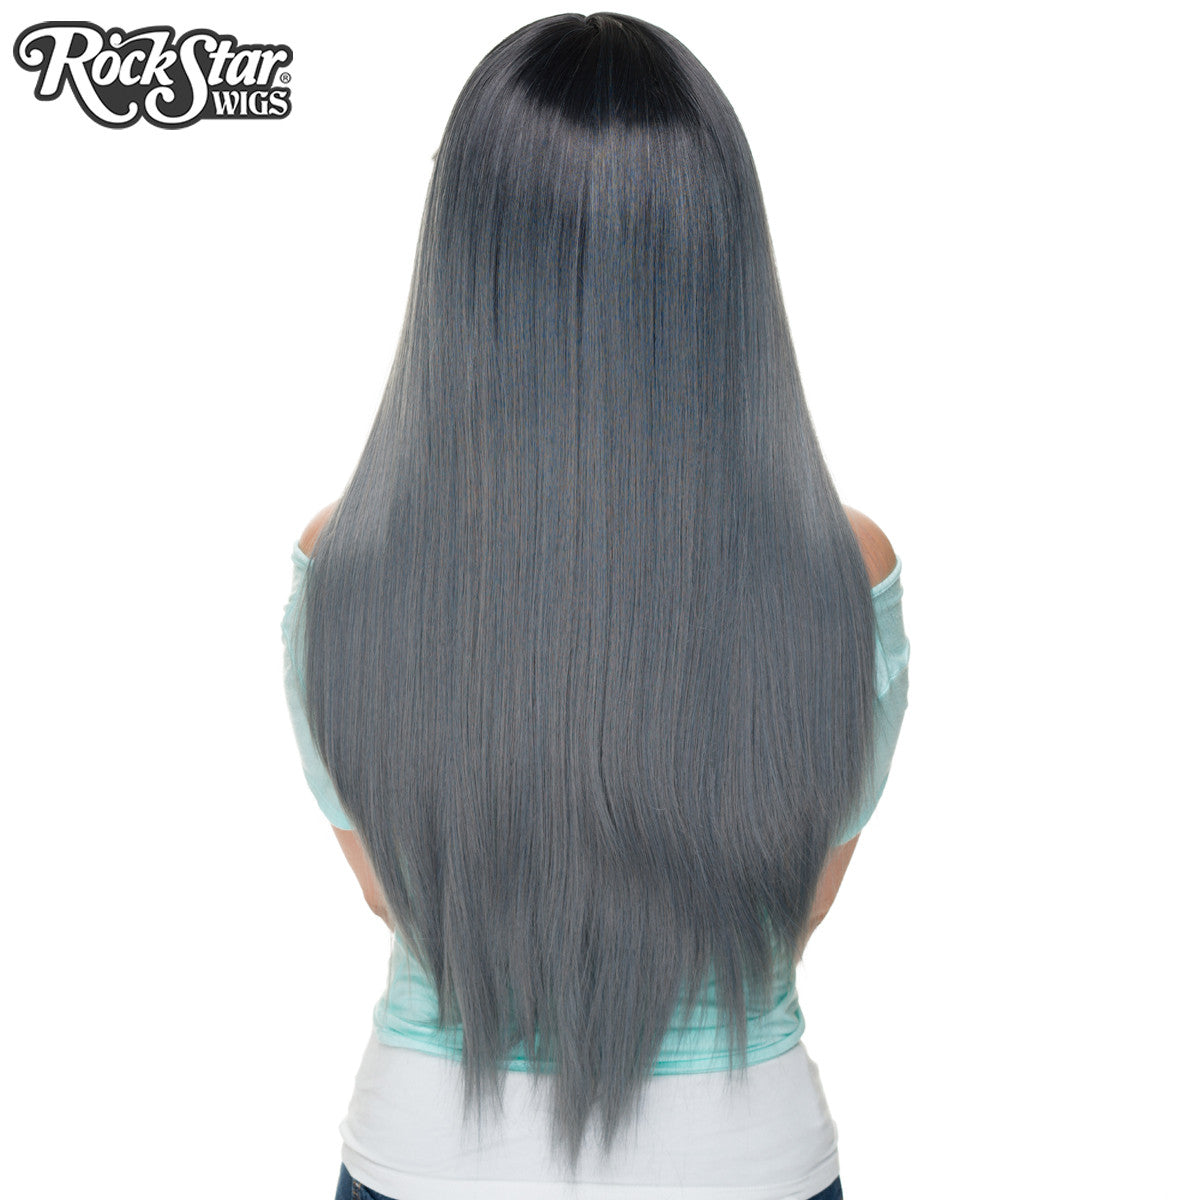 RockStar Wigs® Bella Dark Root ™ Collection - Dark Grey Pewter -00821